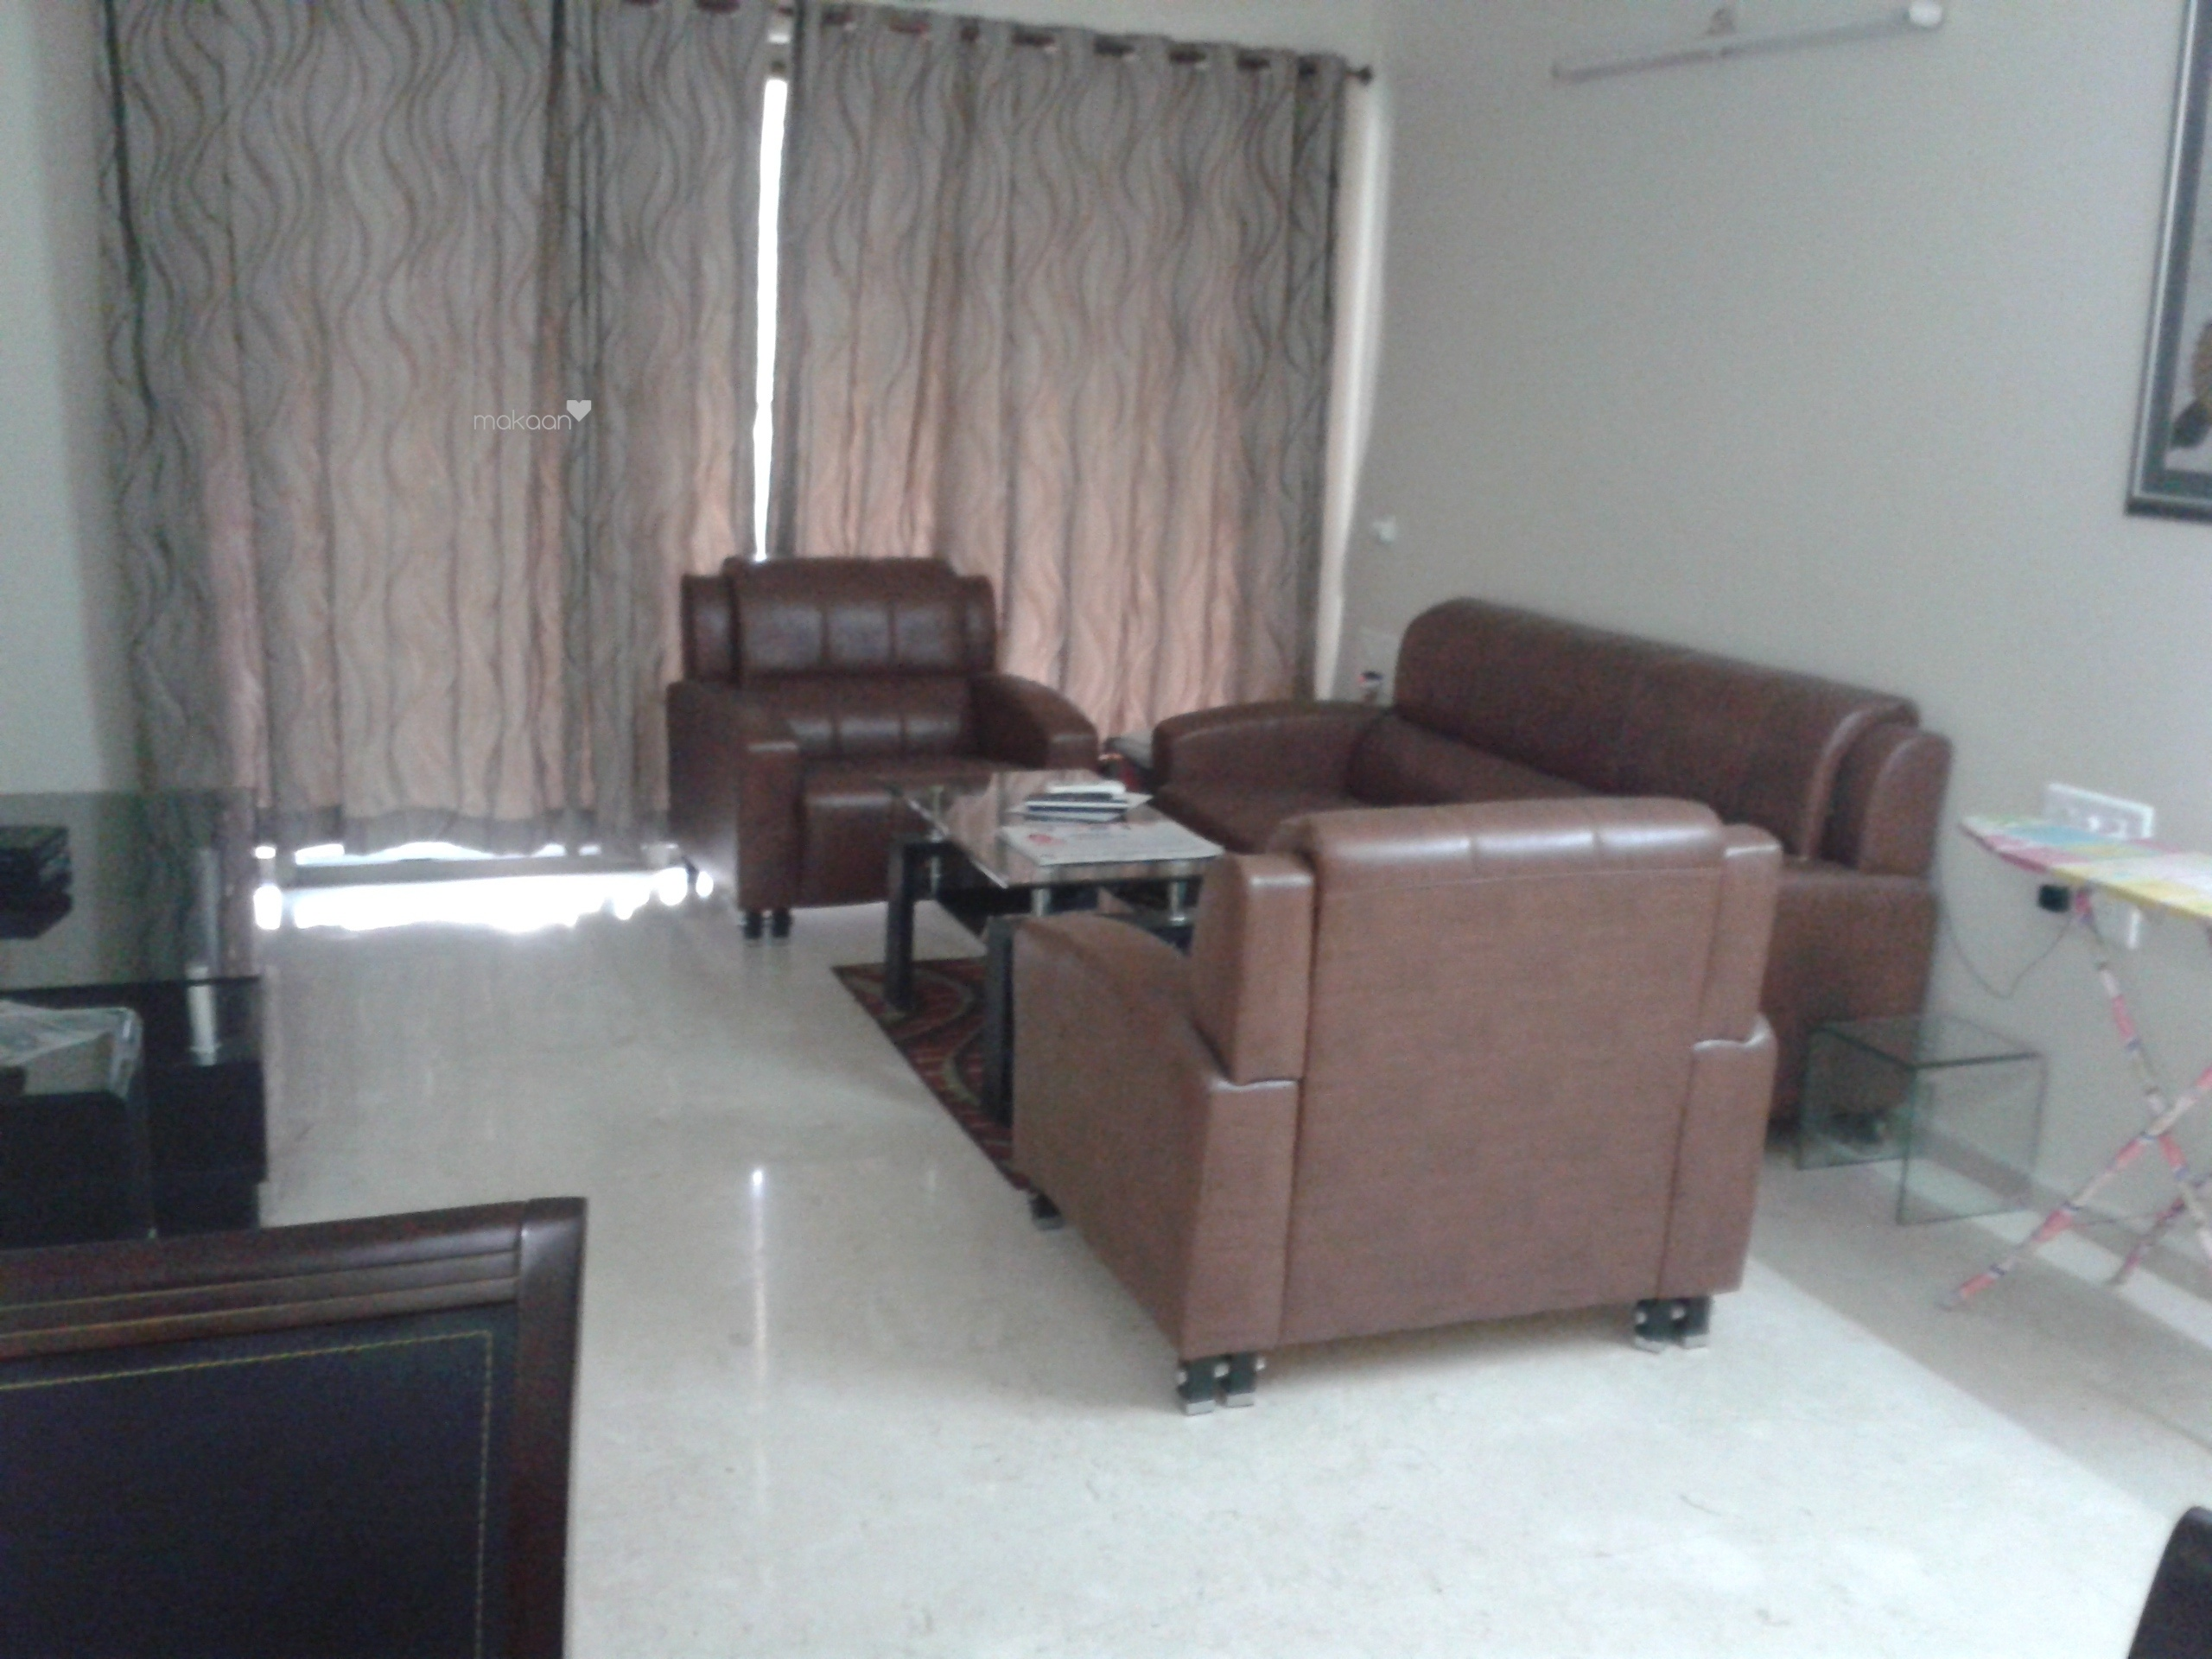 1840 sq ft 2BHK 2BHK+2T (1,840 sq ft) + Servant Room Property By Black and White Aventura In Casa Grande, Lower Parel